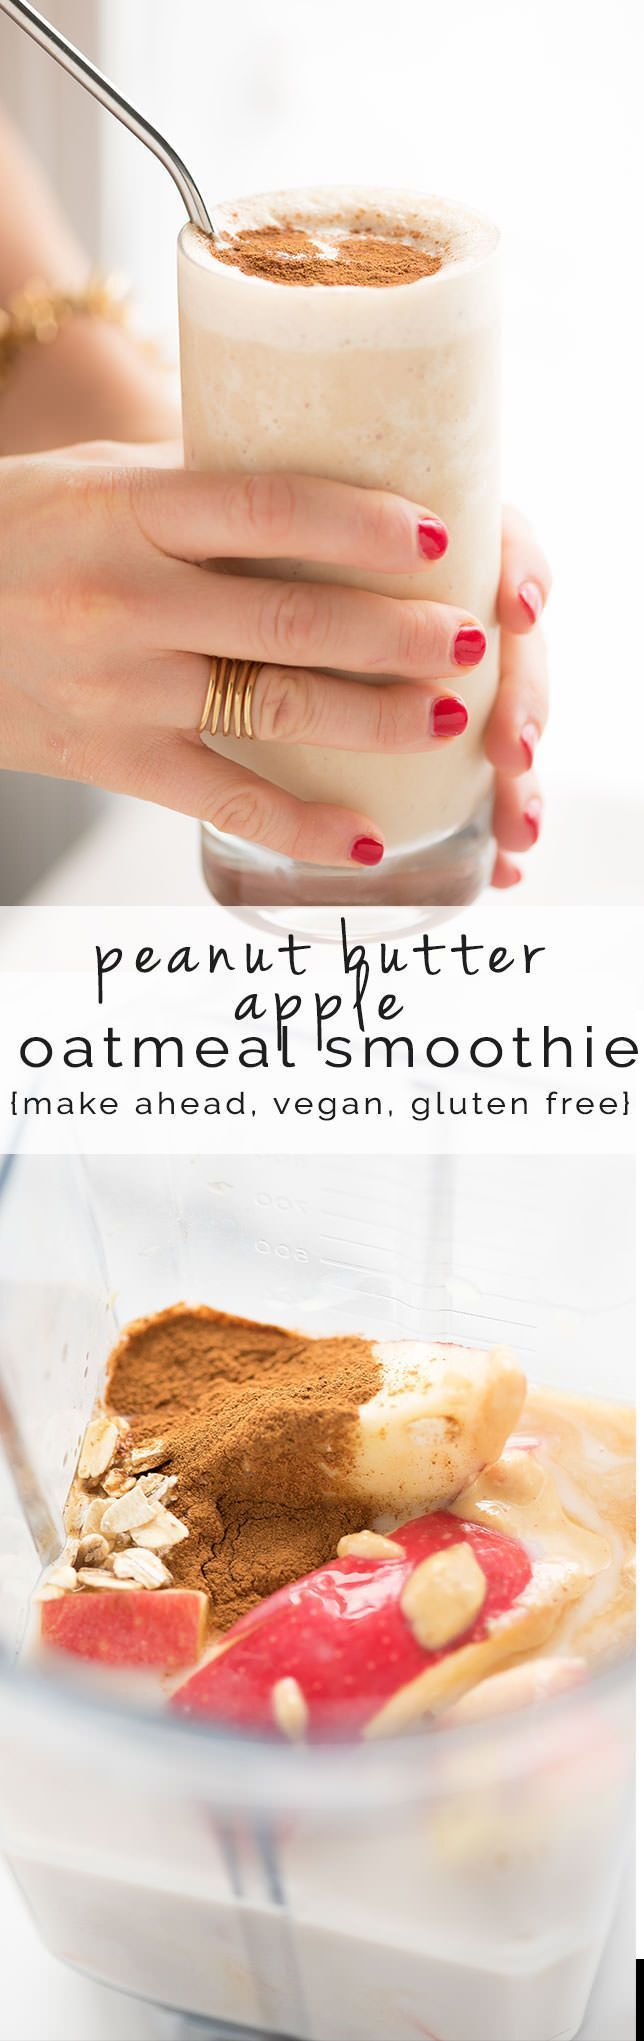 Apple Oatmeal Smoothie Recipes is easy, healthy filled with Peanut Butter. Breakfast, Vegan, instant, cinnamon, Weightloss, Fruit, Skinny, Protein